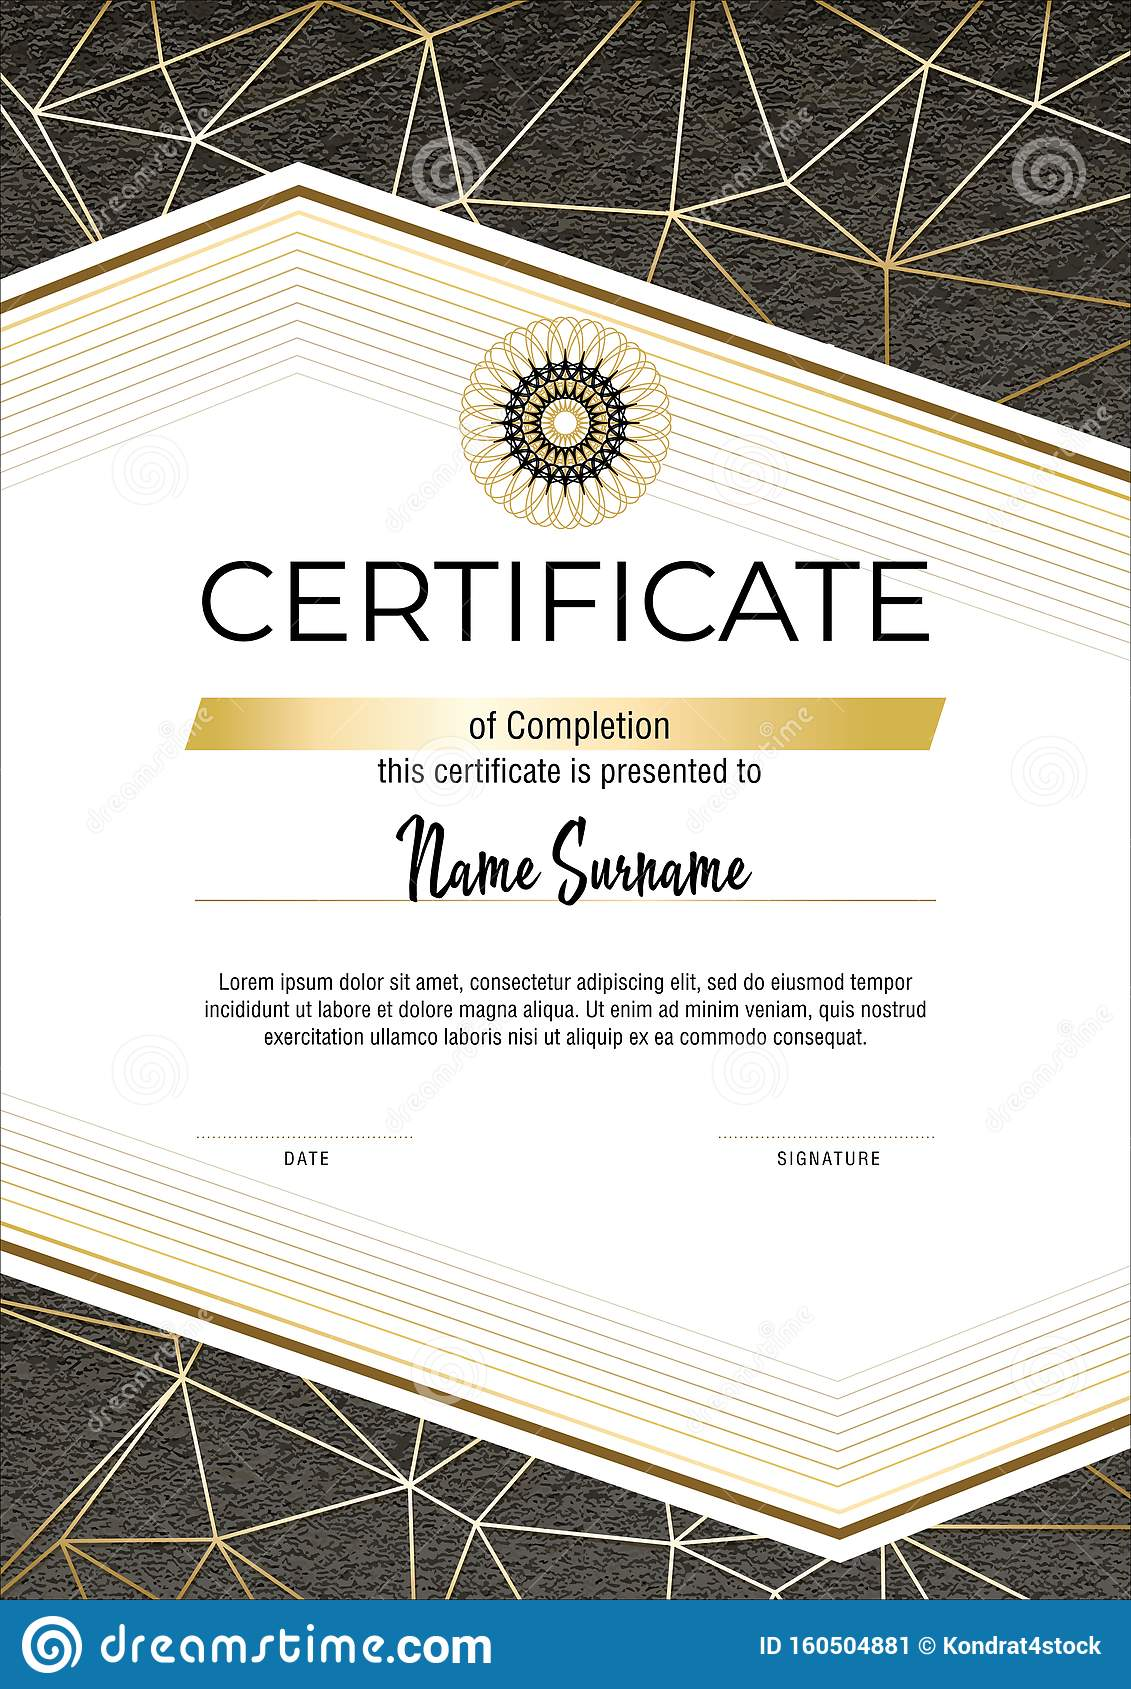 24 Certificate Lines Photos - Free & Royalty-Free Stock Photos In Crossing The Line Certificate Template